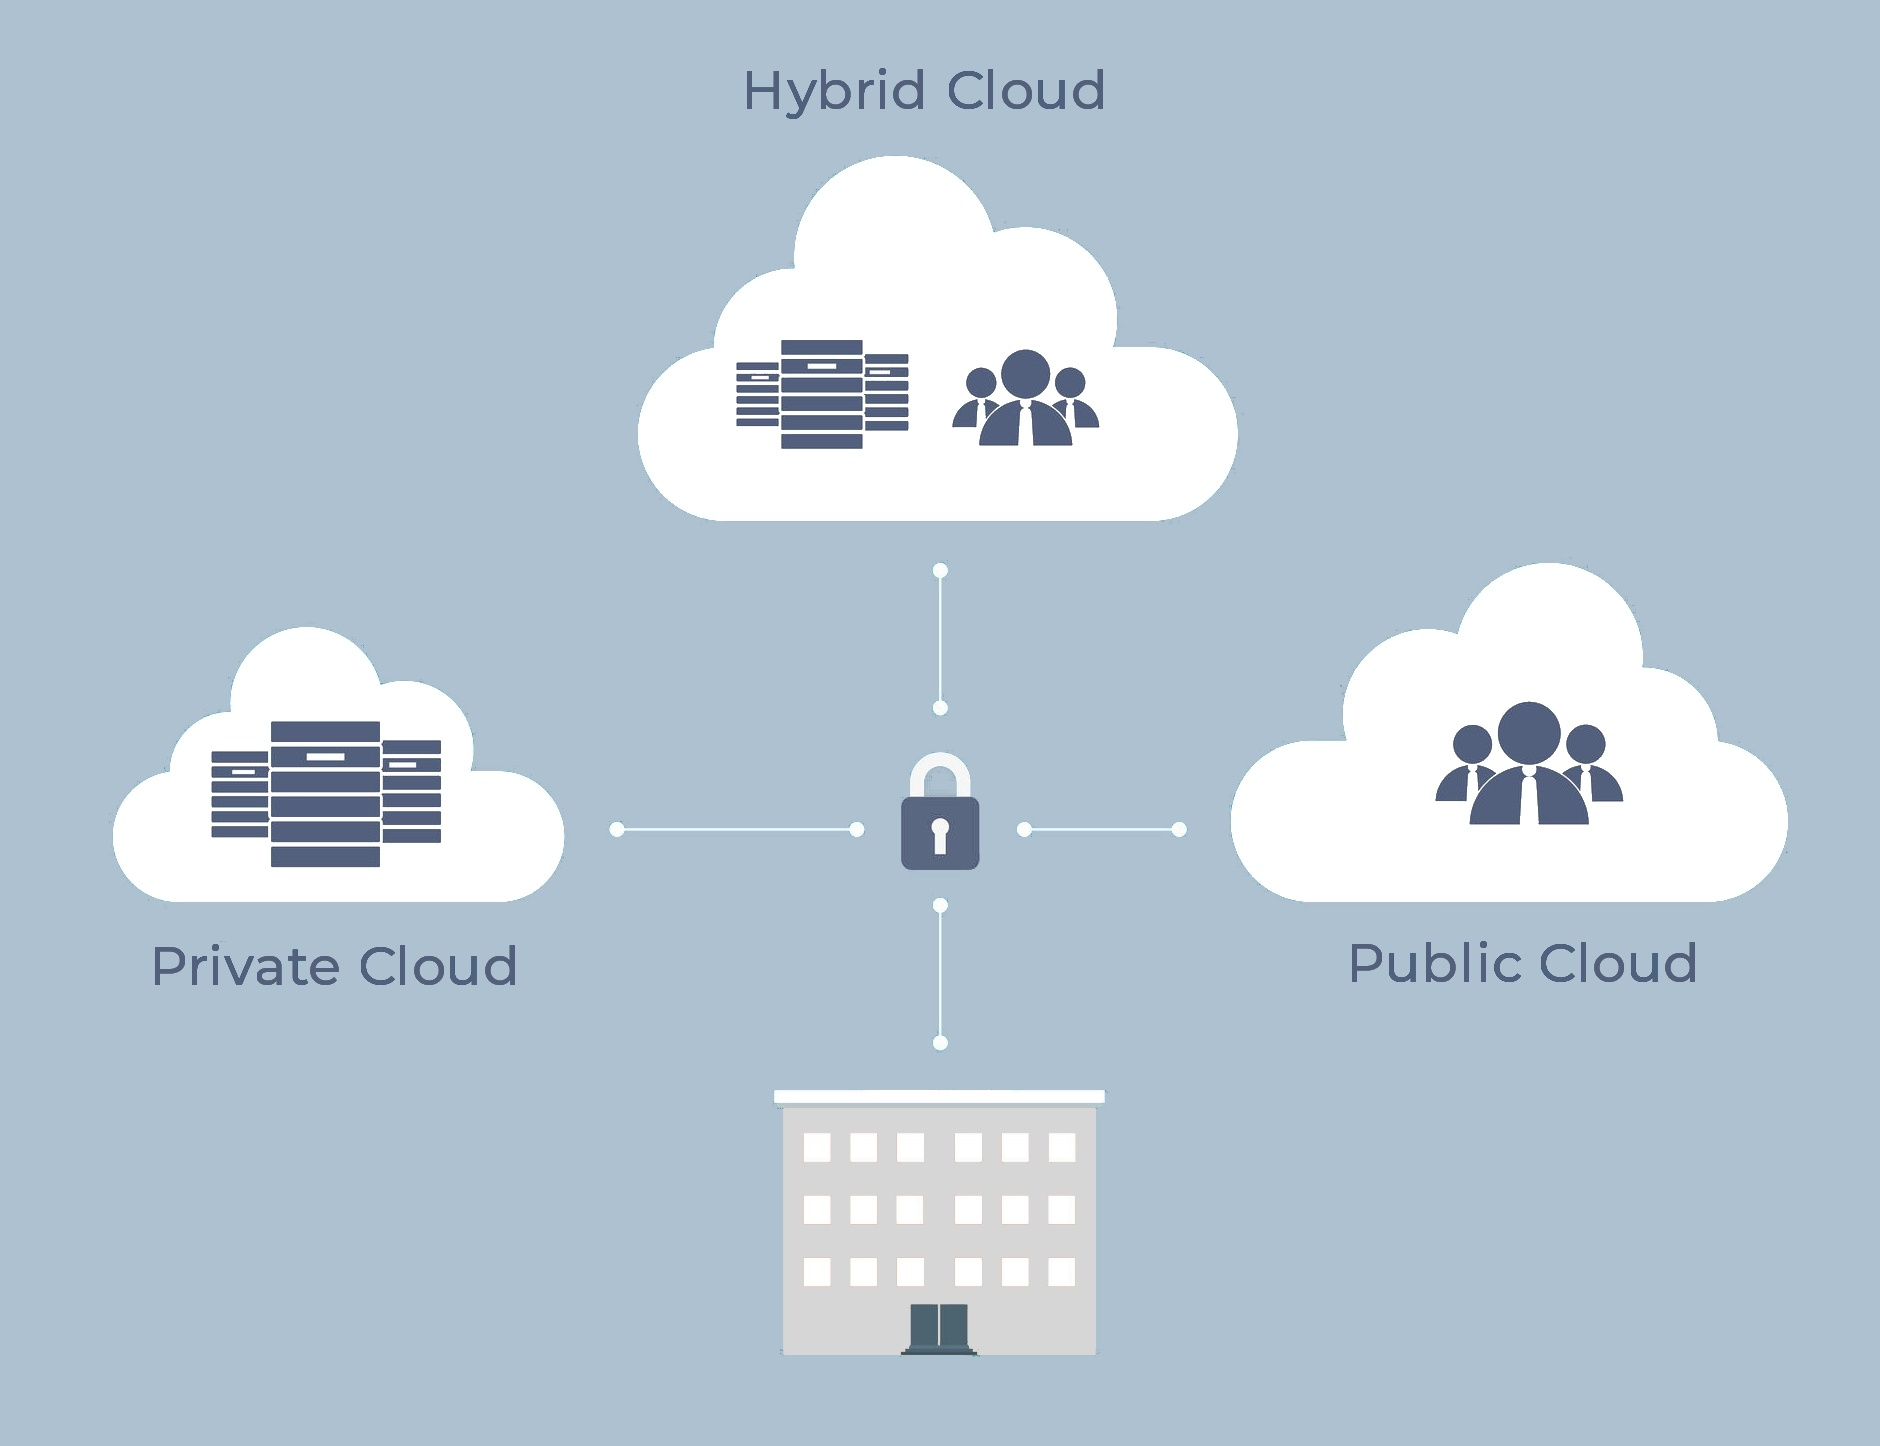 What options do I have for using the cloud? - Featured Image